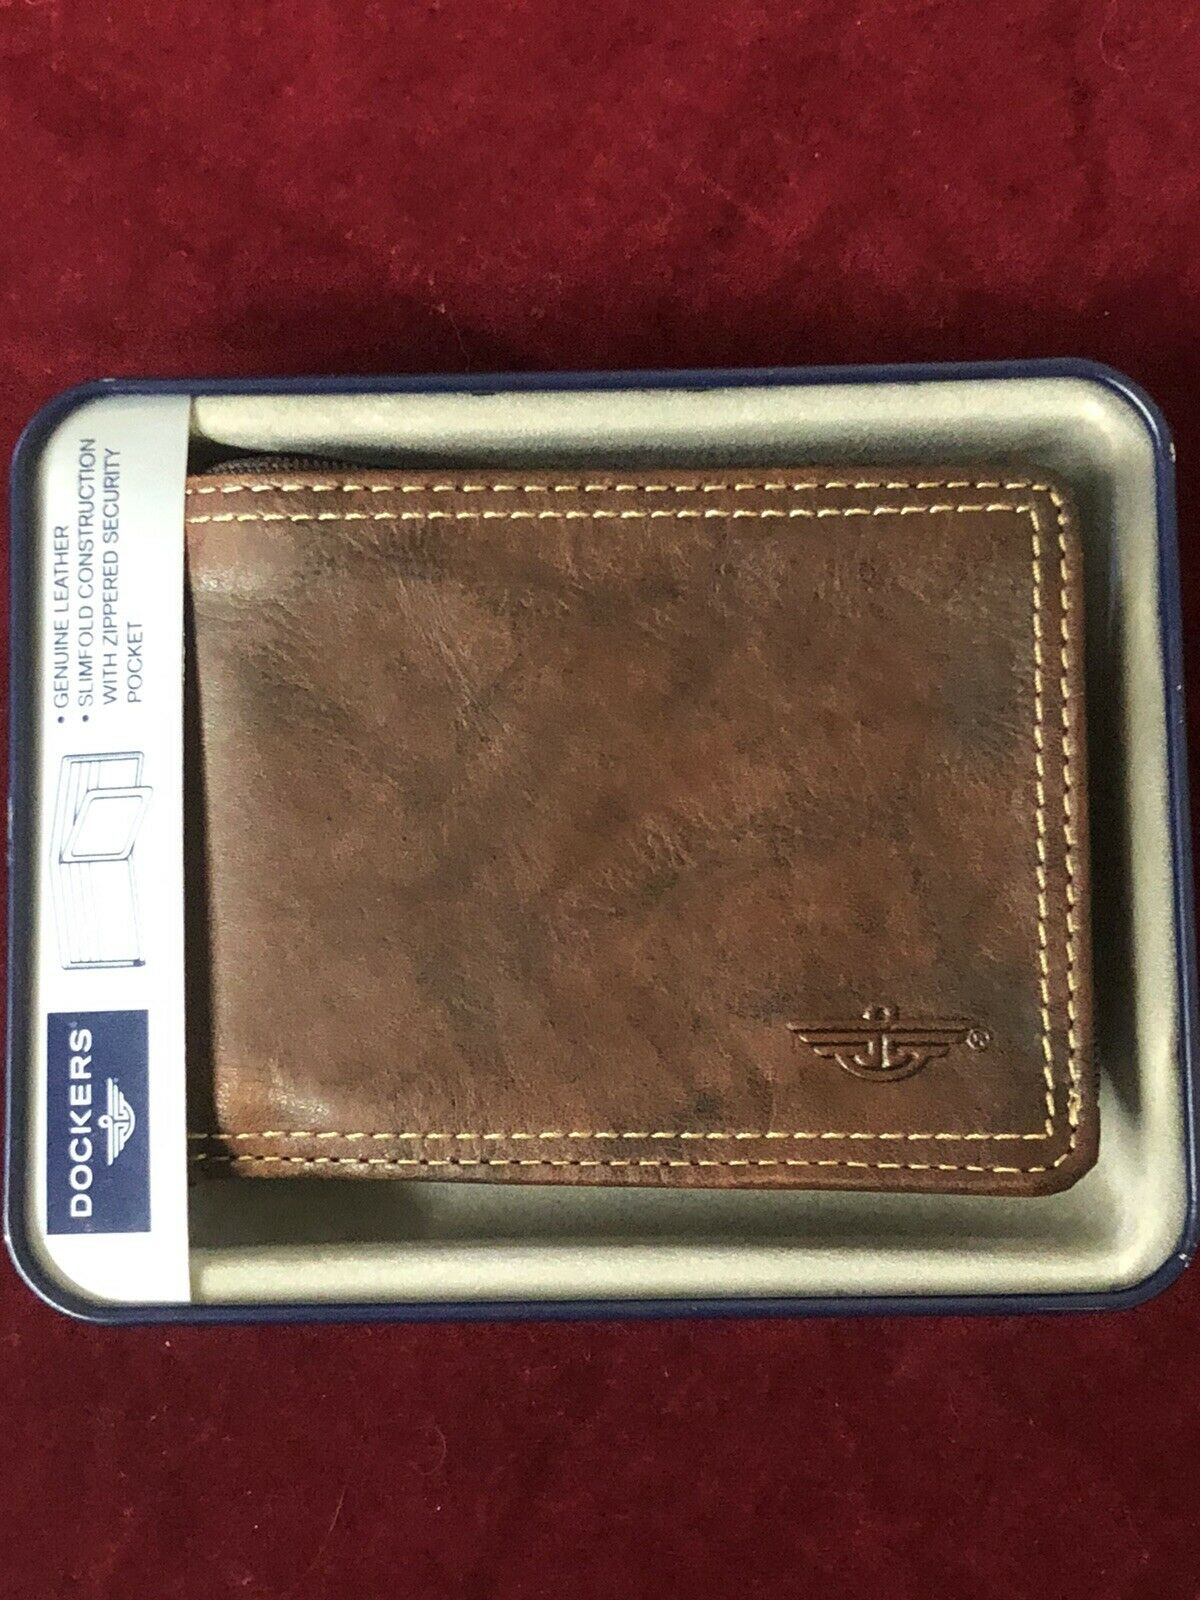 Dockers Men's Wallet, Brown Leather Bifold, New in Box, Divided Currency Pocket